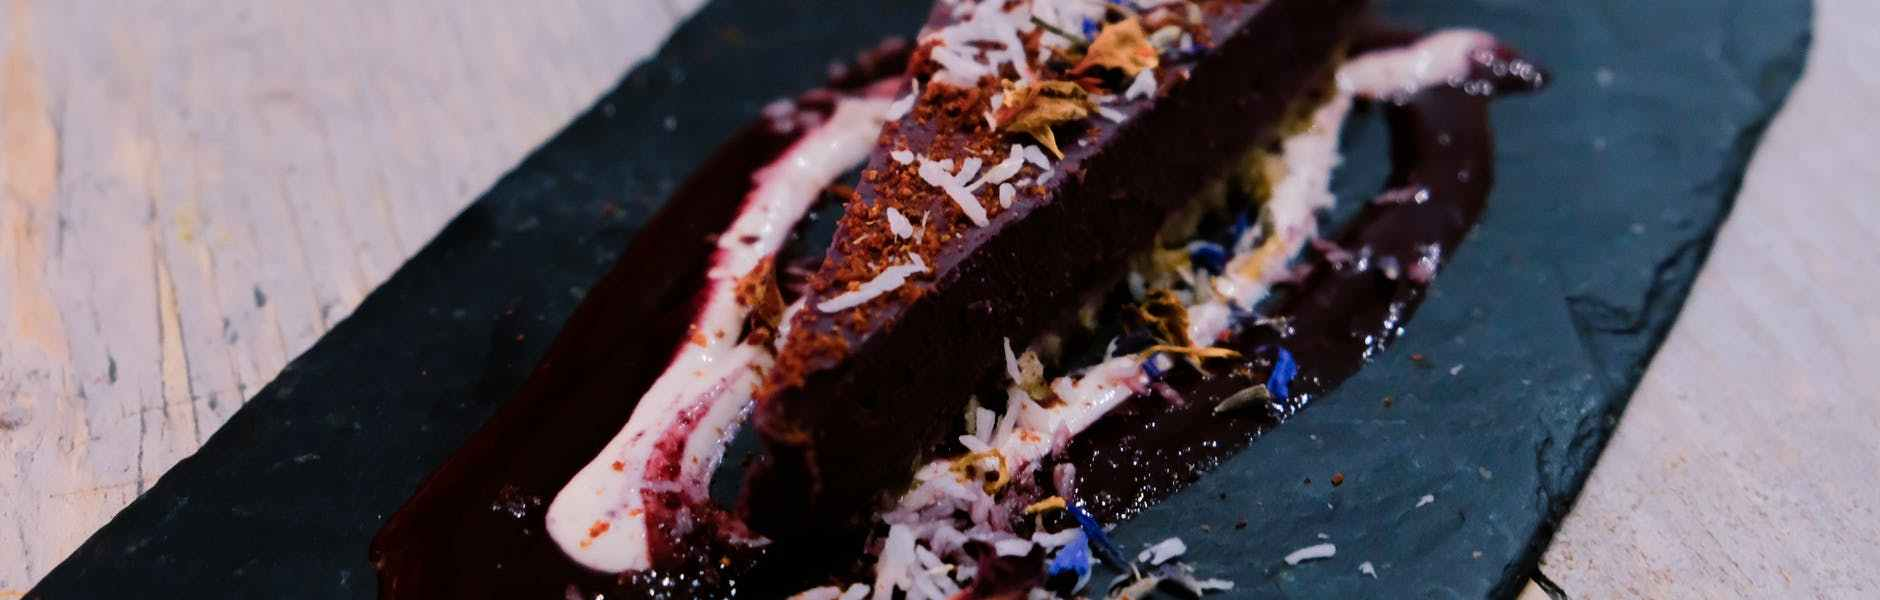 piece of tasty chocolate cheesecake with coconut flakes in cafe